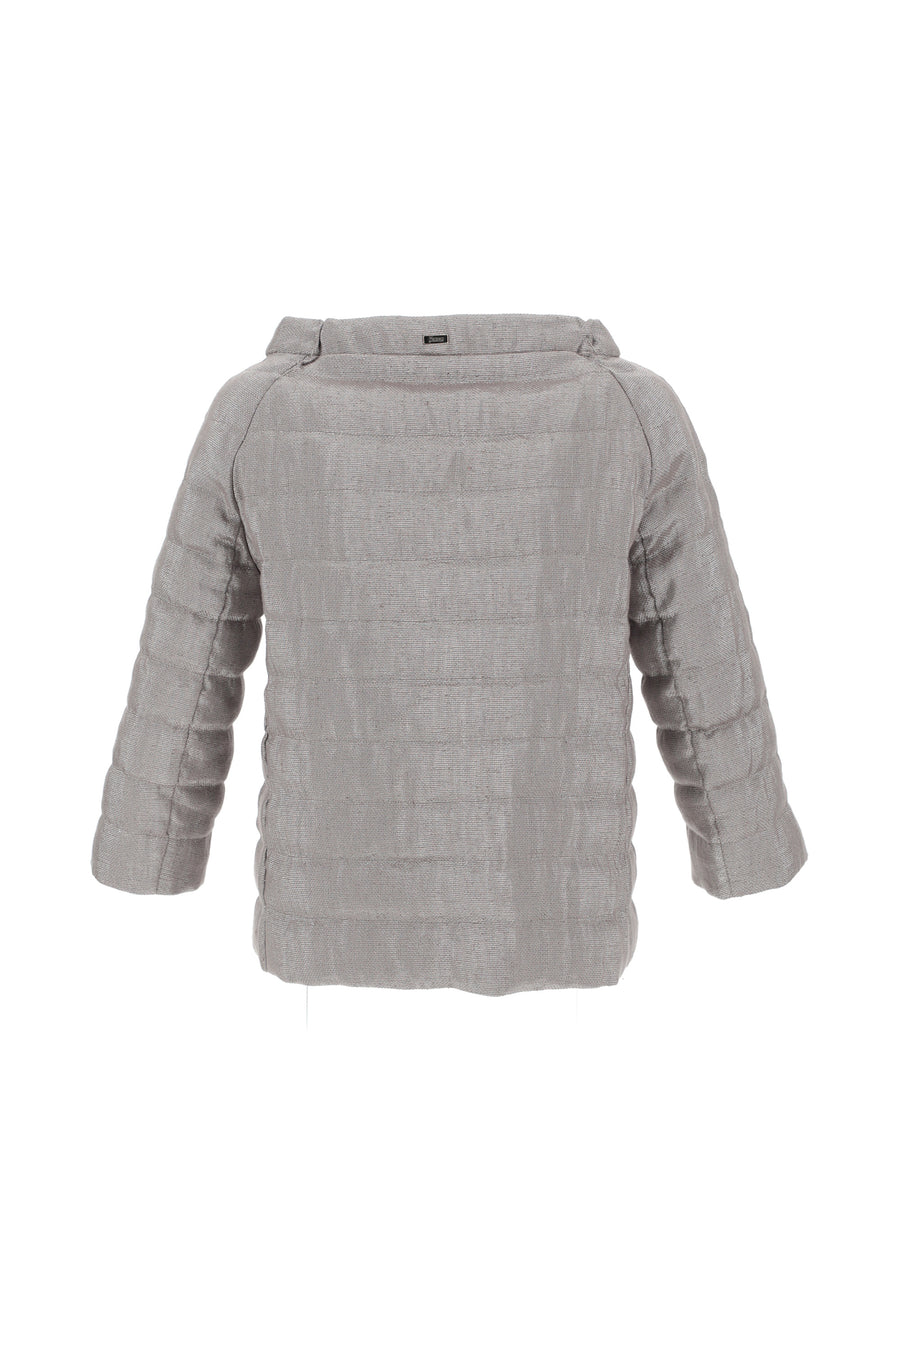 Lurex Linen 3/4 Sleeve Jacket - Silver